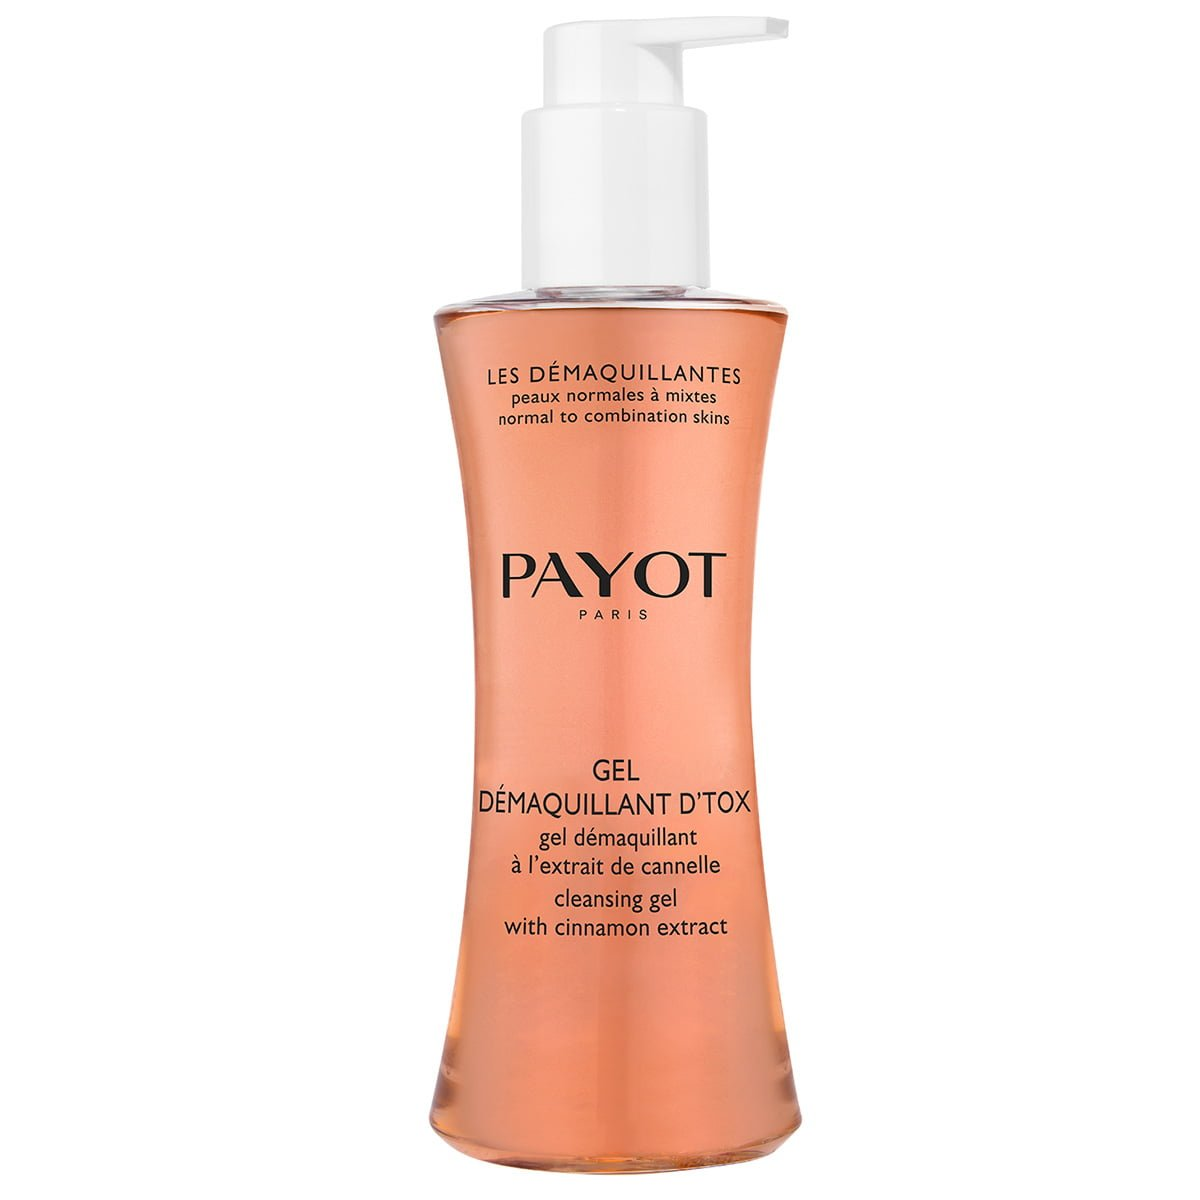 Payot - Gel Démaquillant D'Tox